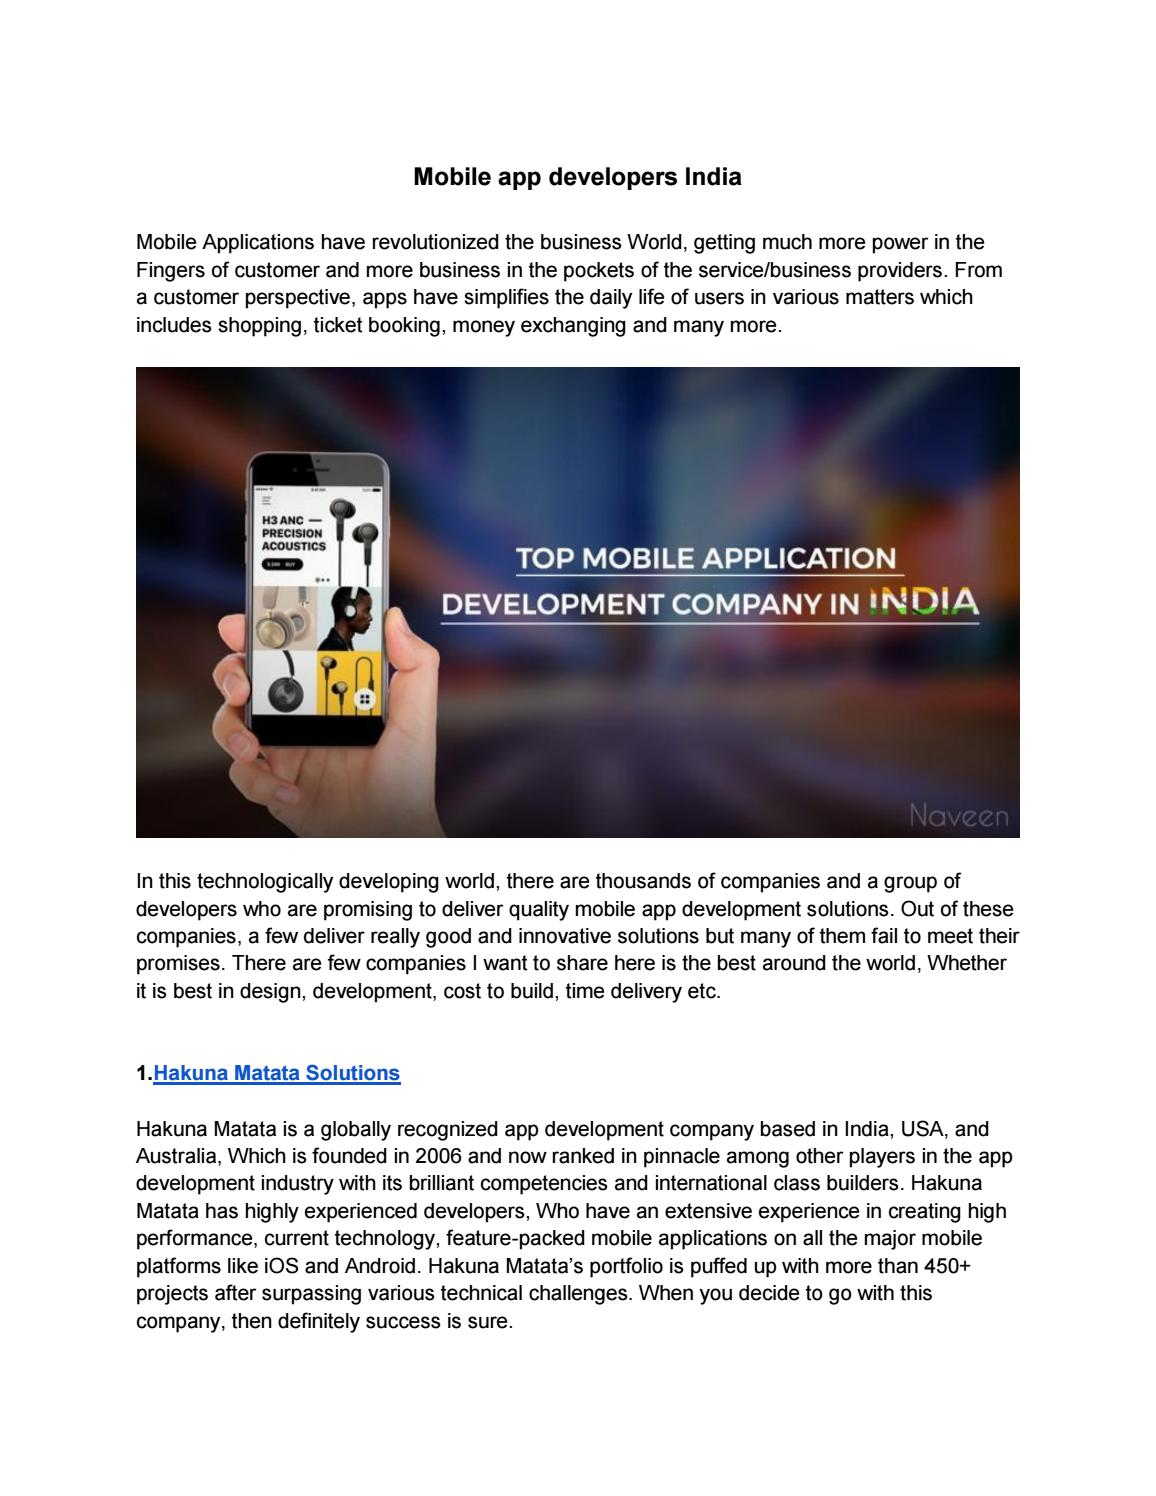 Mobile app developers india(1) by Advik naveen - issuu